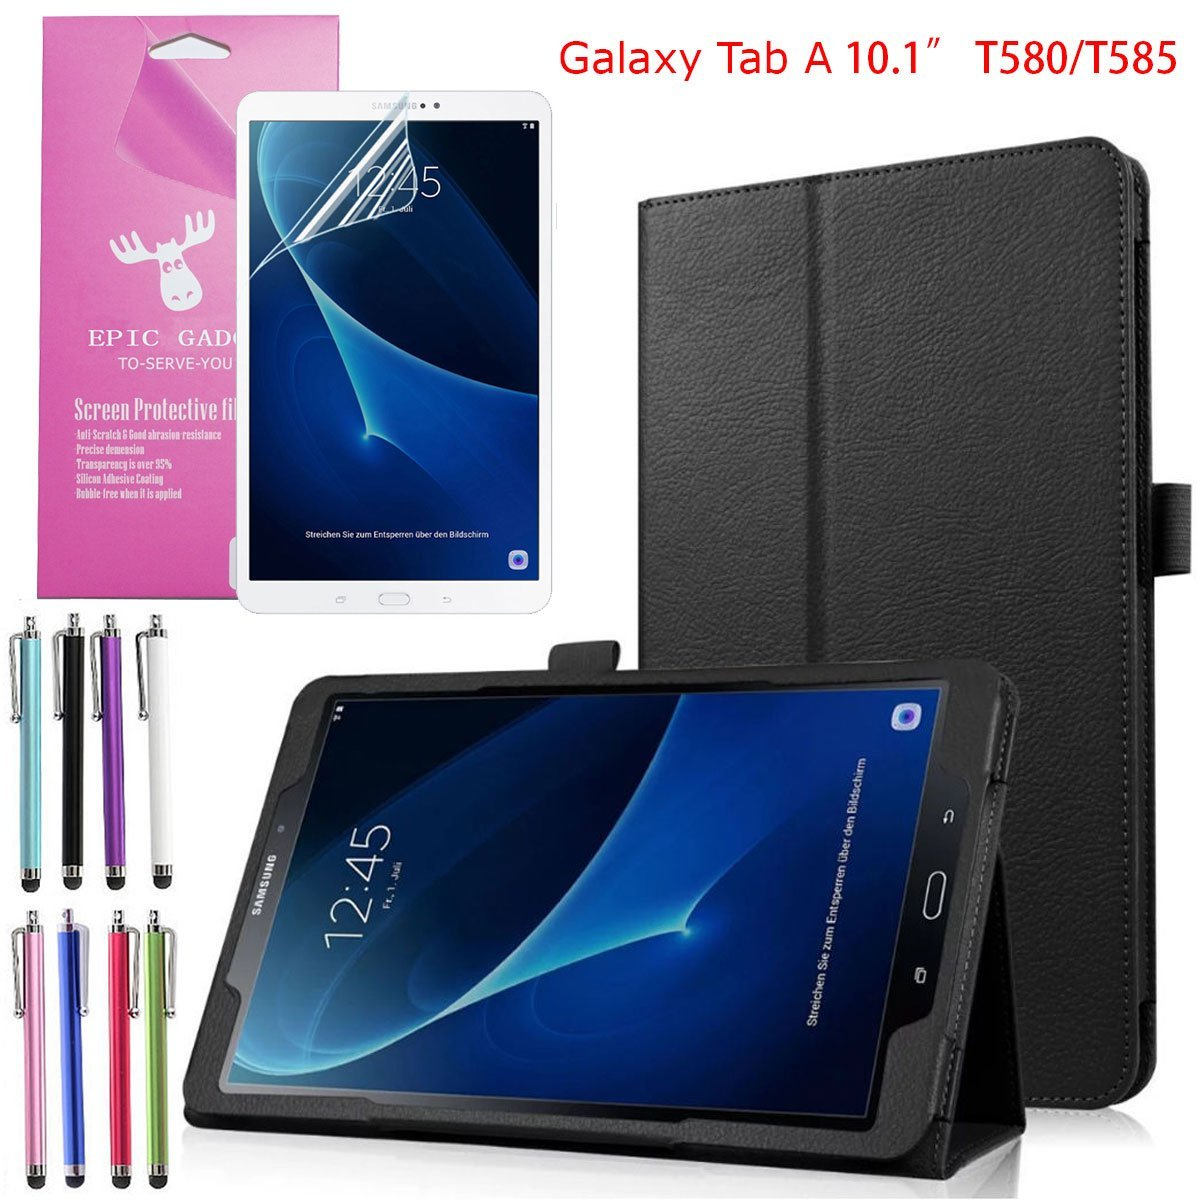 "(SM-T580/T585) Galaxy Tab A 10.1"" Folio Case, EpicGadget(TM) Lightweight Slim Smart Cover Leather Case Stand Cover with Auto Sleep/Wake for Tab A 10.1 Tablet + Tab A 10.1 Screen Protector (Black)"